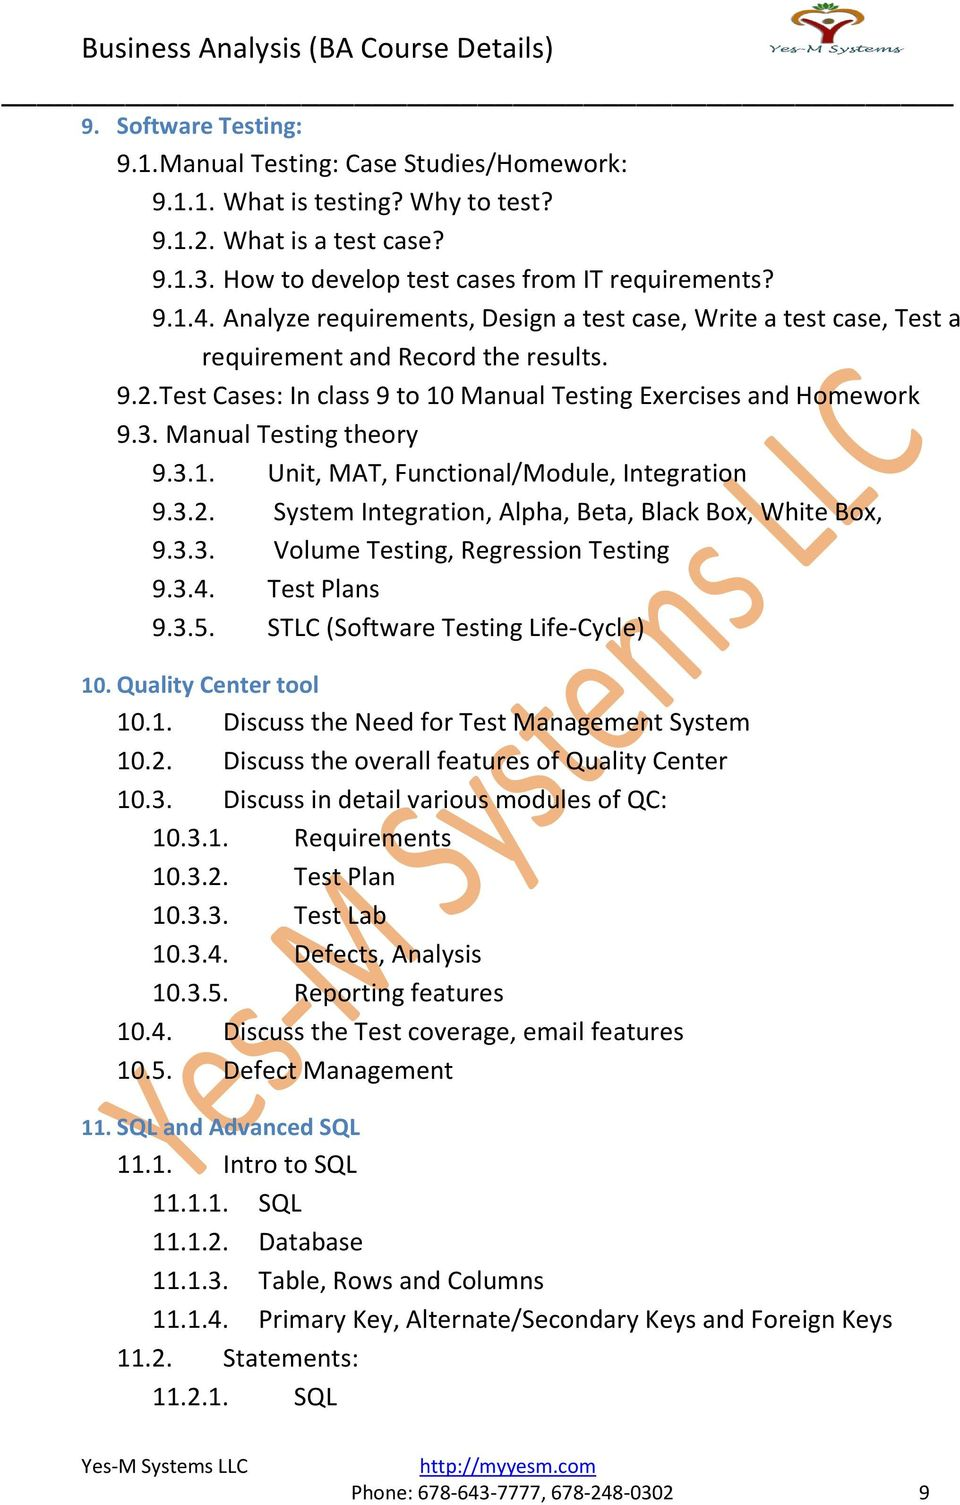 Manual Testing theory 9.3.1. Unit, MAT, Functional/Module, Integration 9.3.2. System Integration, Alpha, Beta, Black Box, White Box, 9.3.3. Volume Testing, Regression Testing 9.3.4. Test Plans 9.3.5.